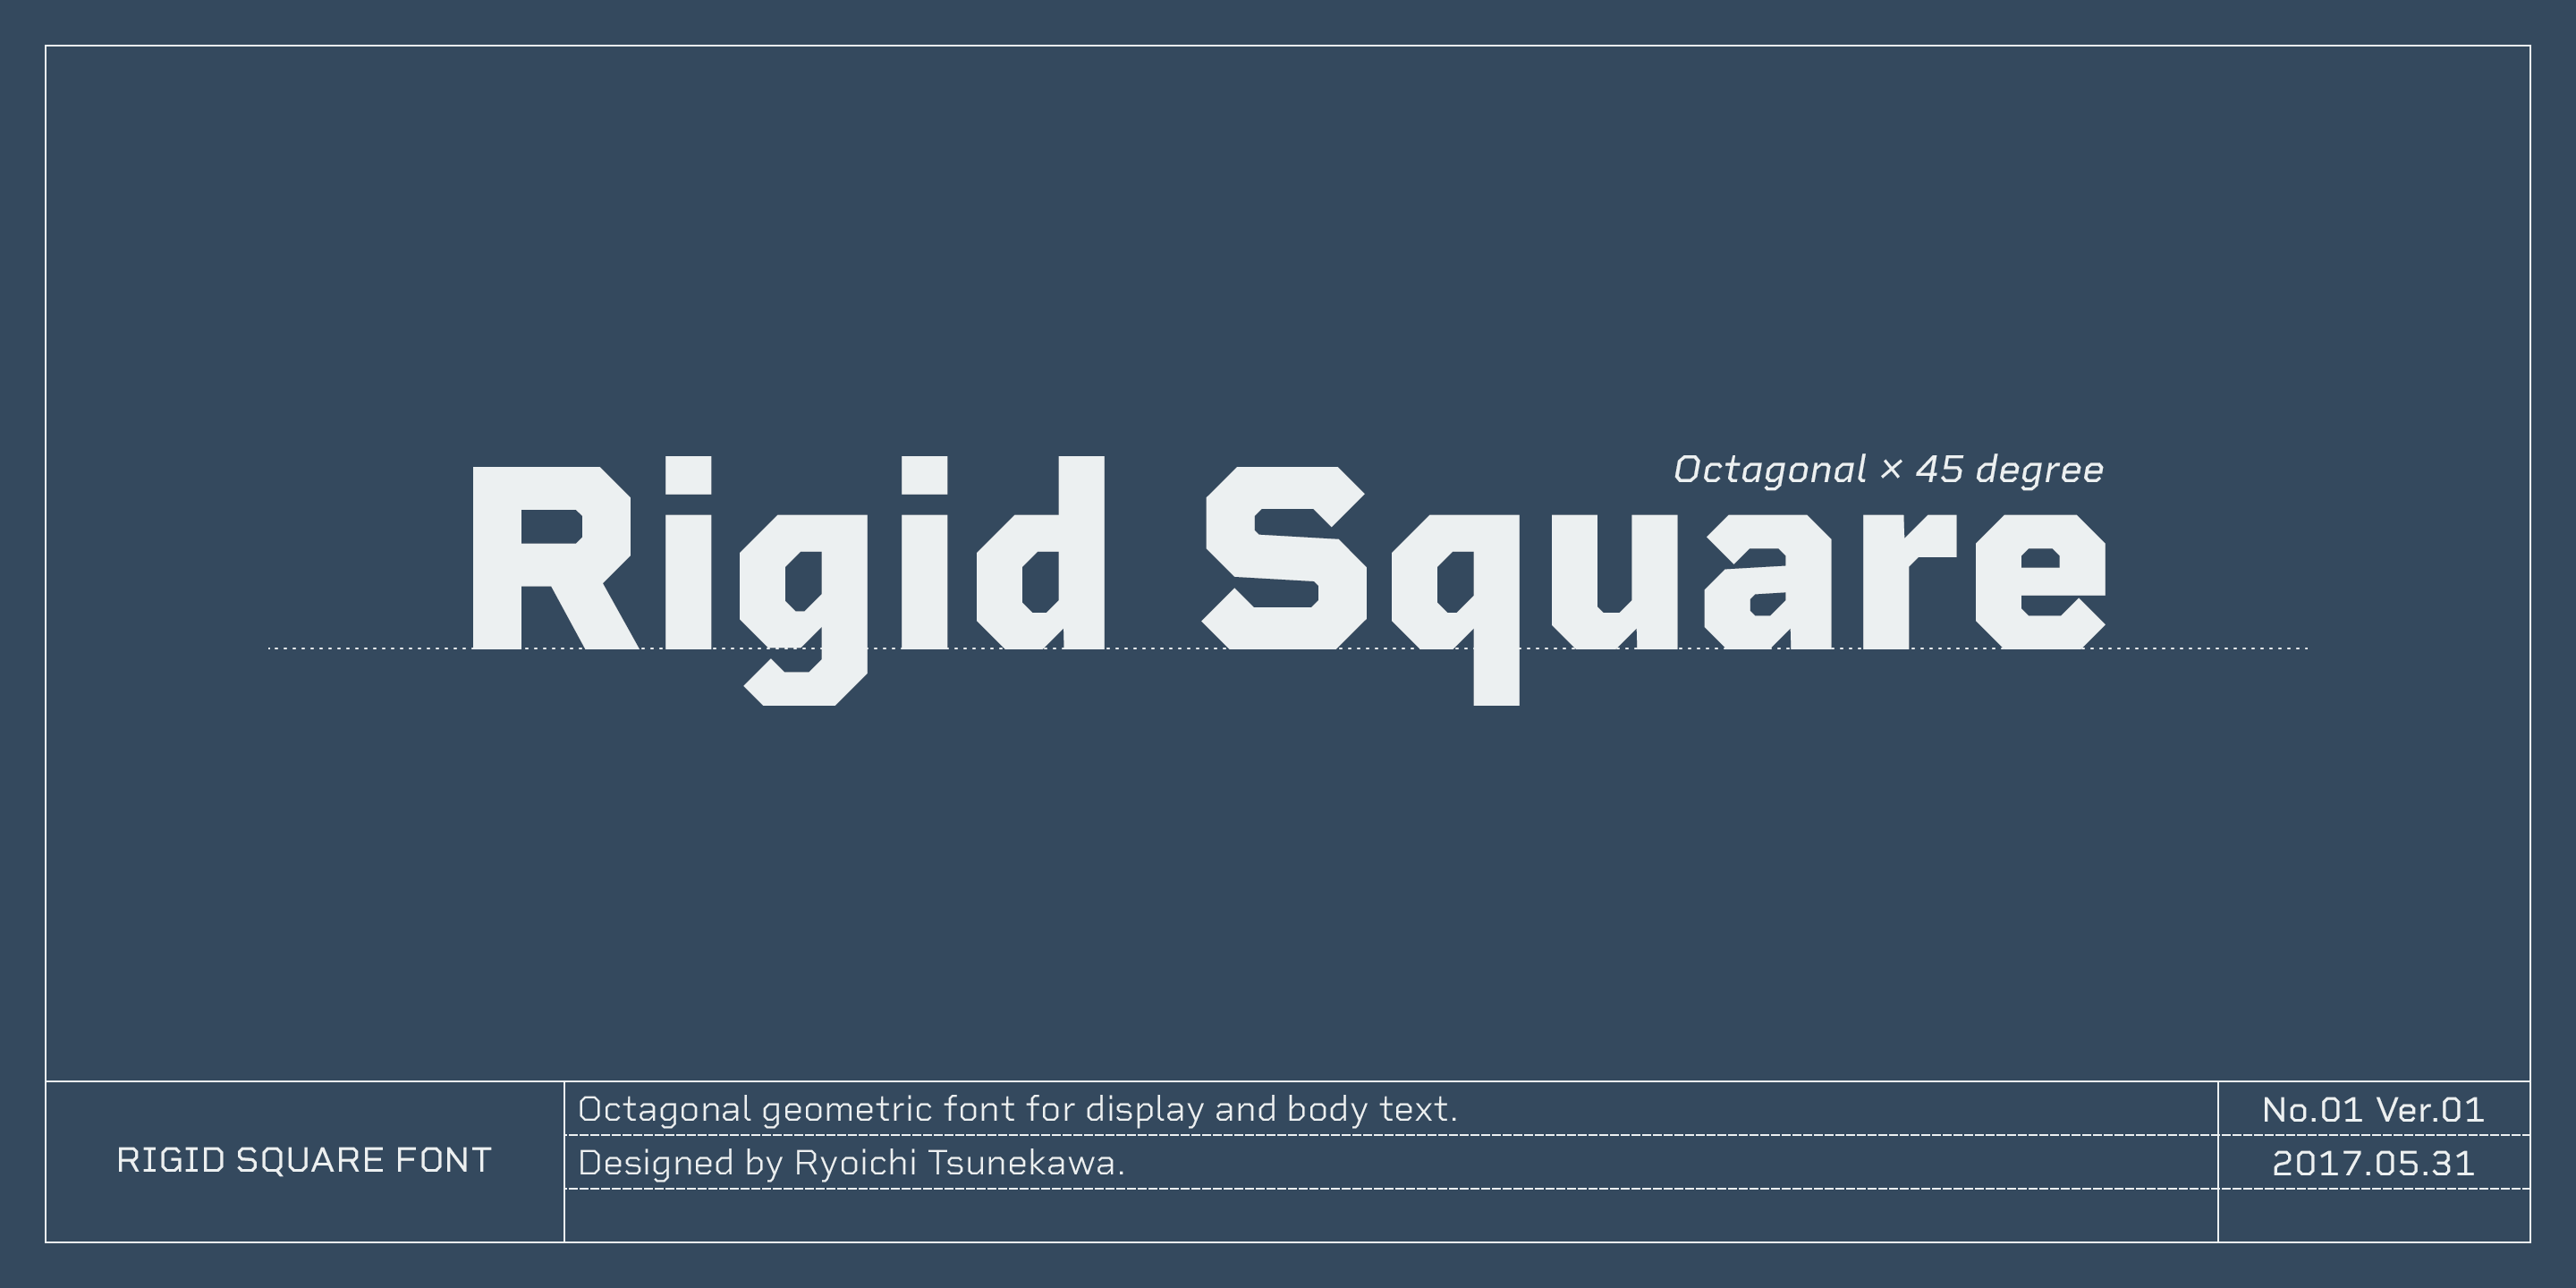 Rigid Square